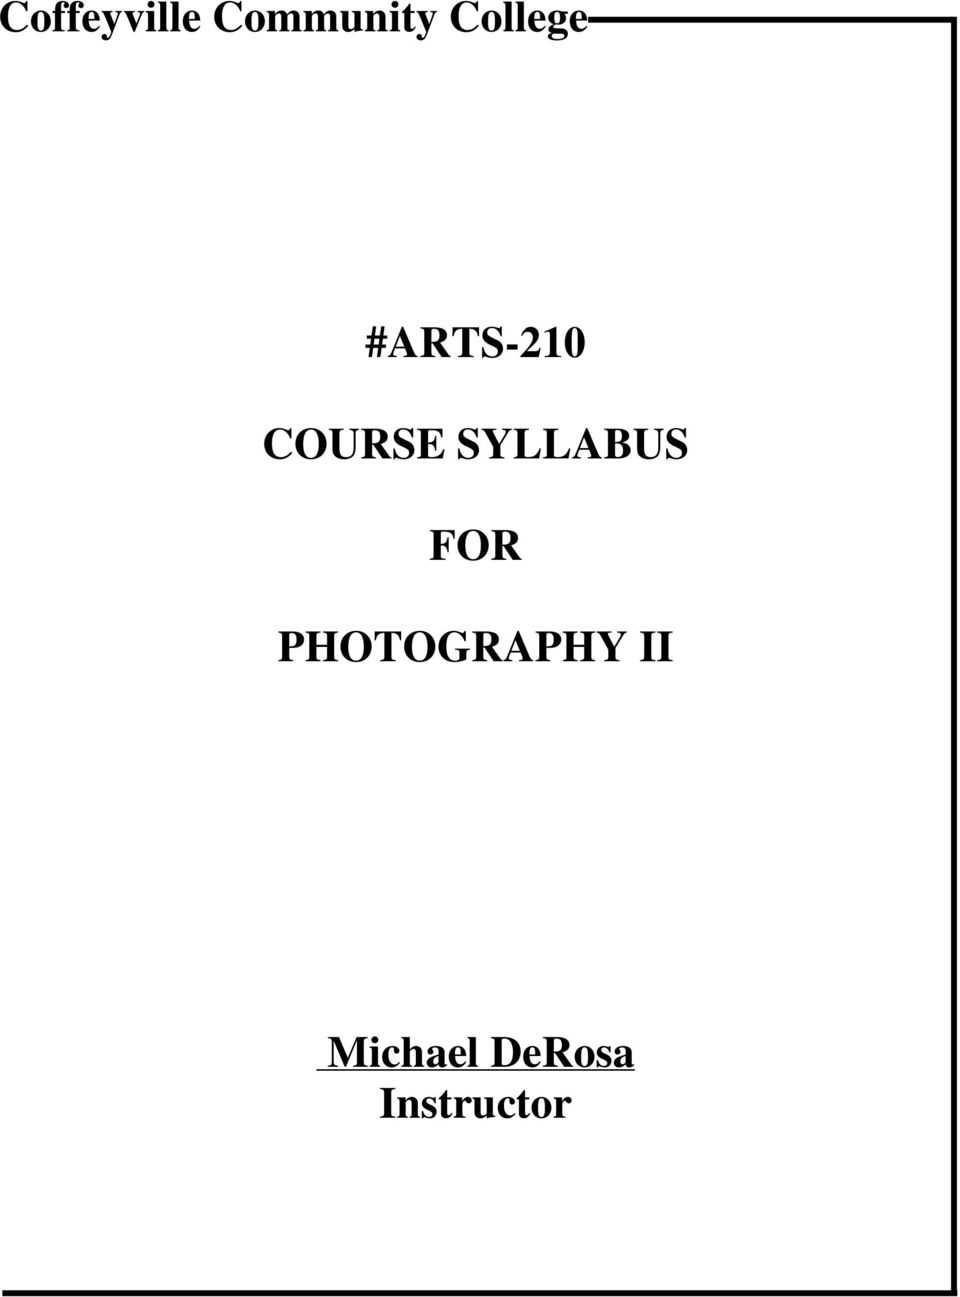 COURSE SYLLABUS FOR